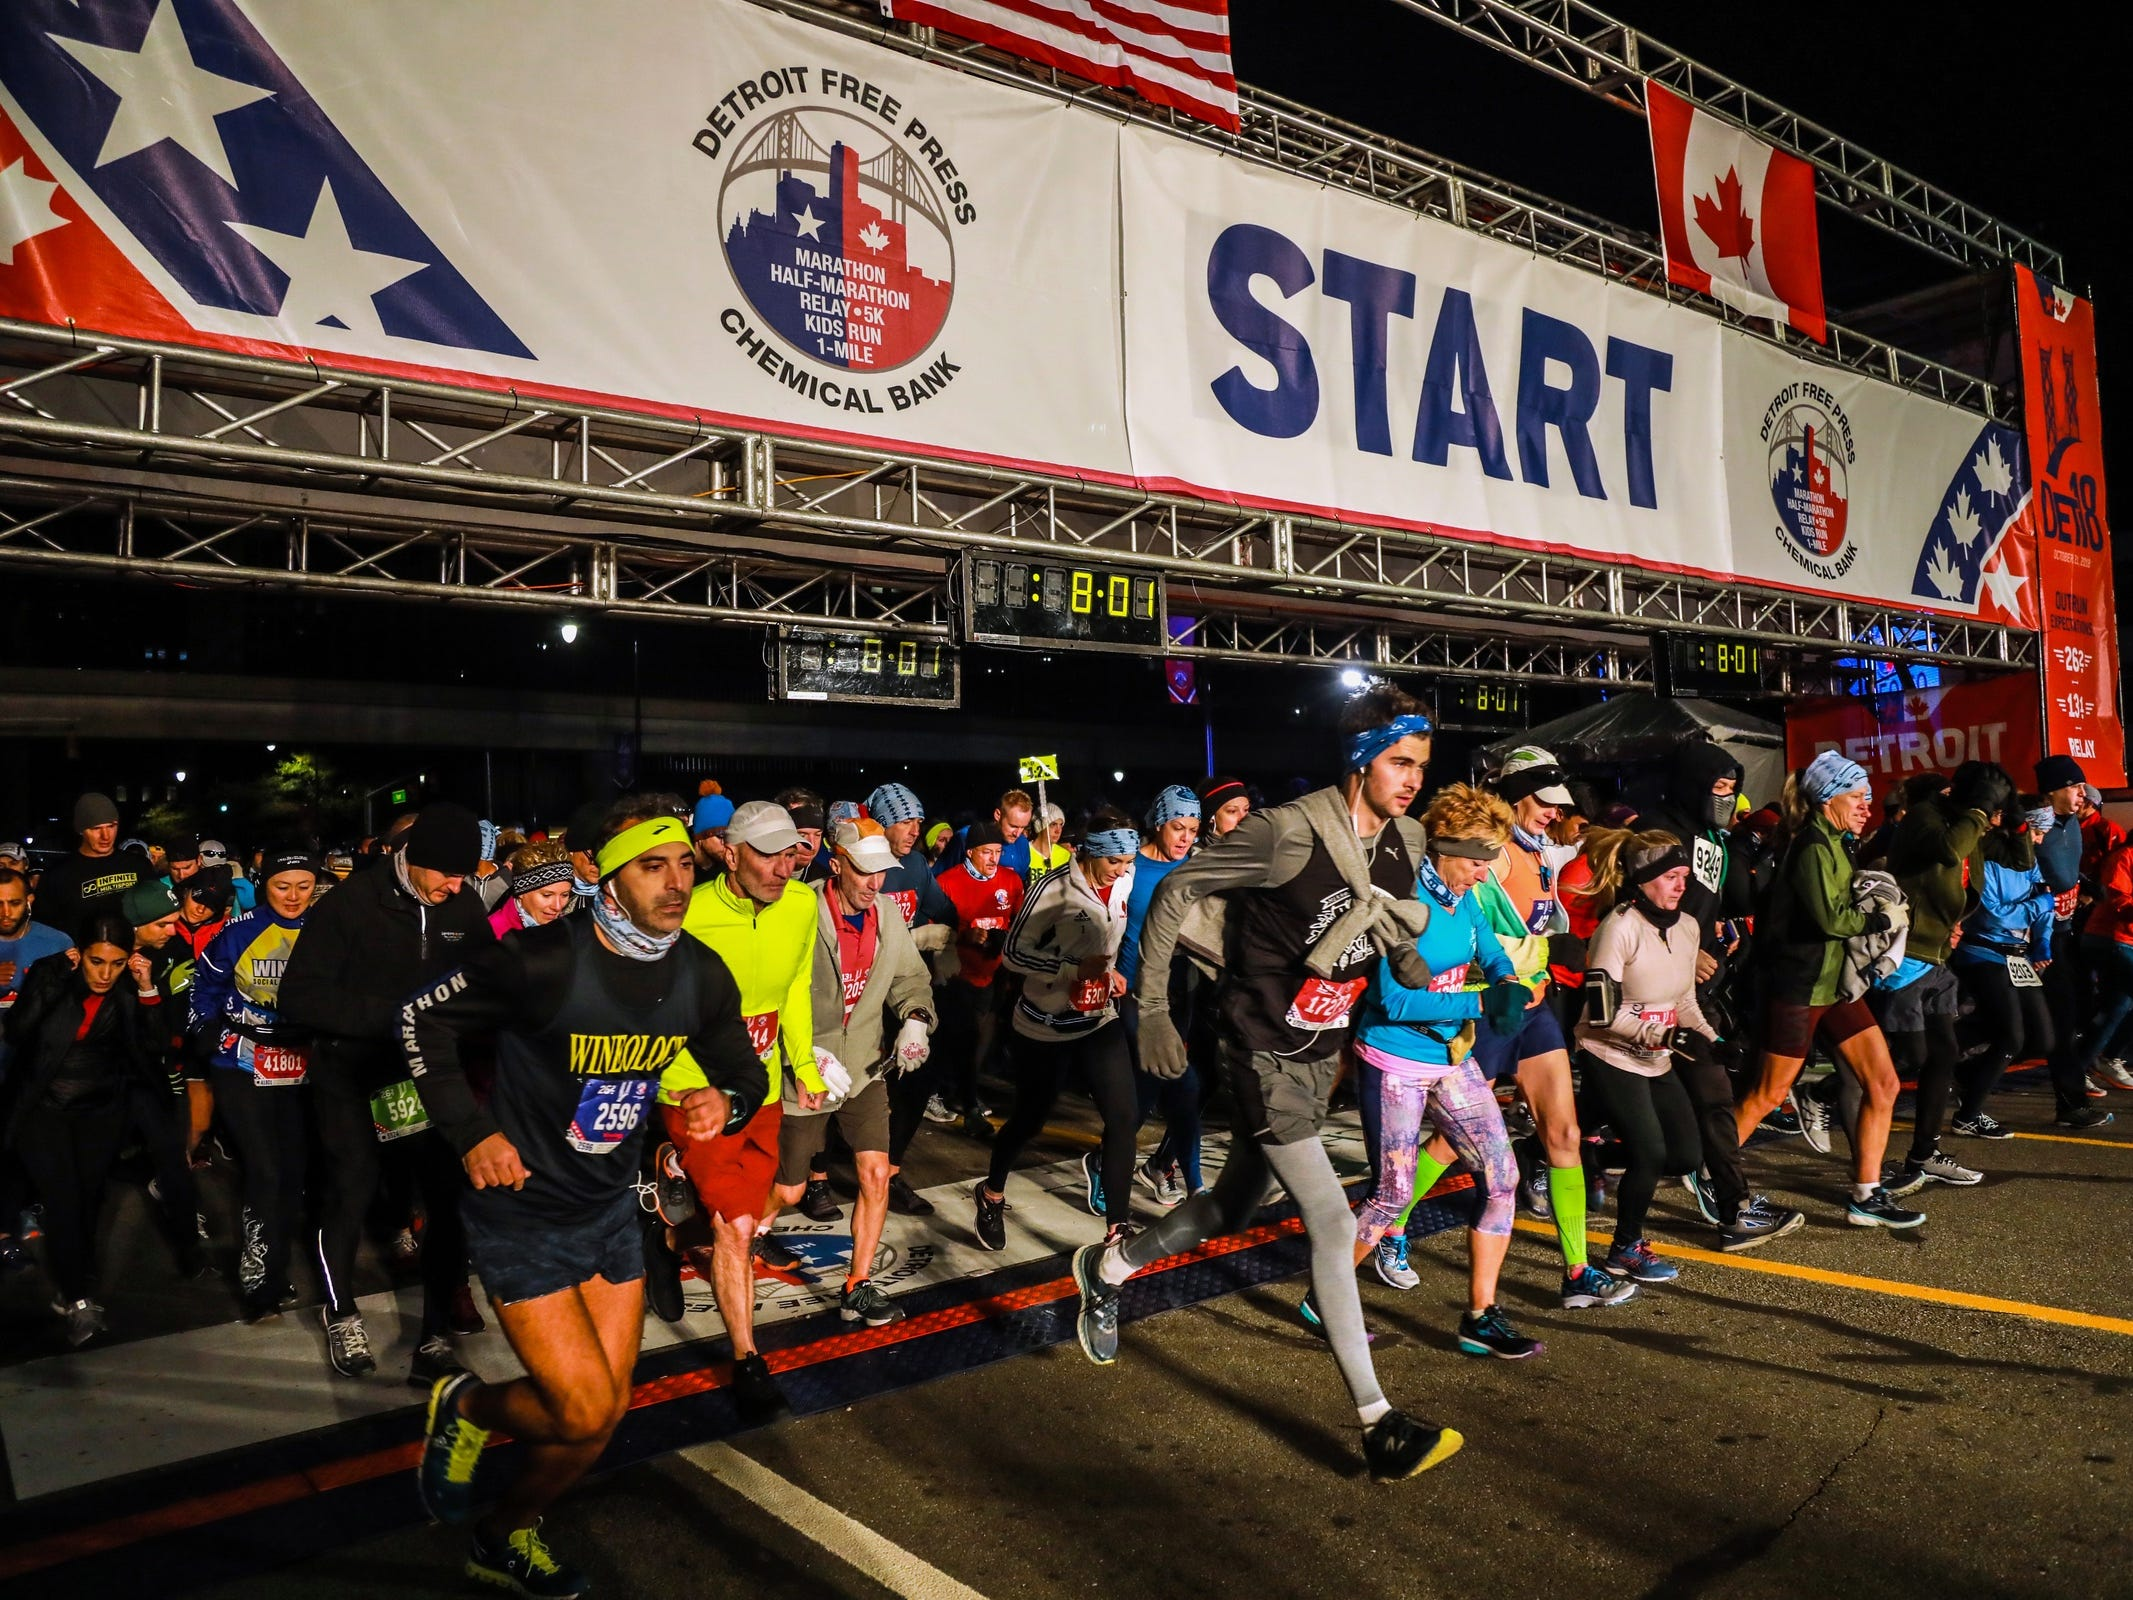 Runners take off in waves for the half and full marathon down Fort street, during the 41st Annual Detroit Free Press/Chemical Bank Marathon in Detroit on Sunday, Oct. 21, 2018.